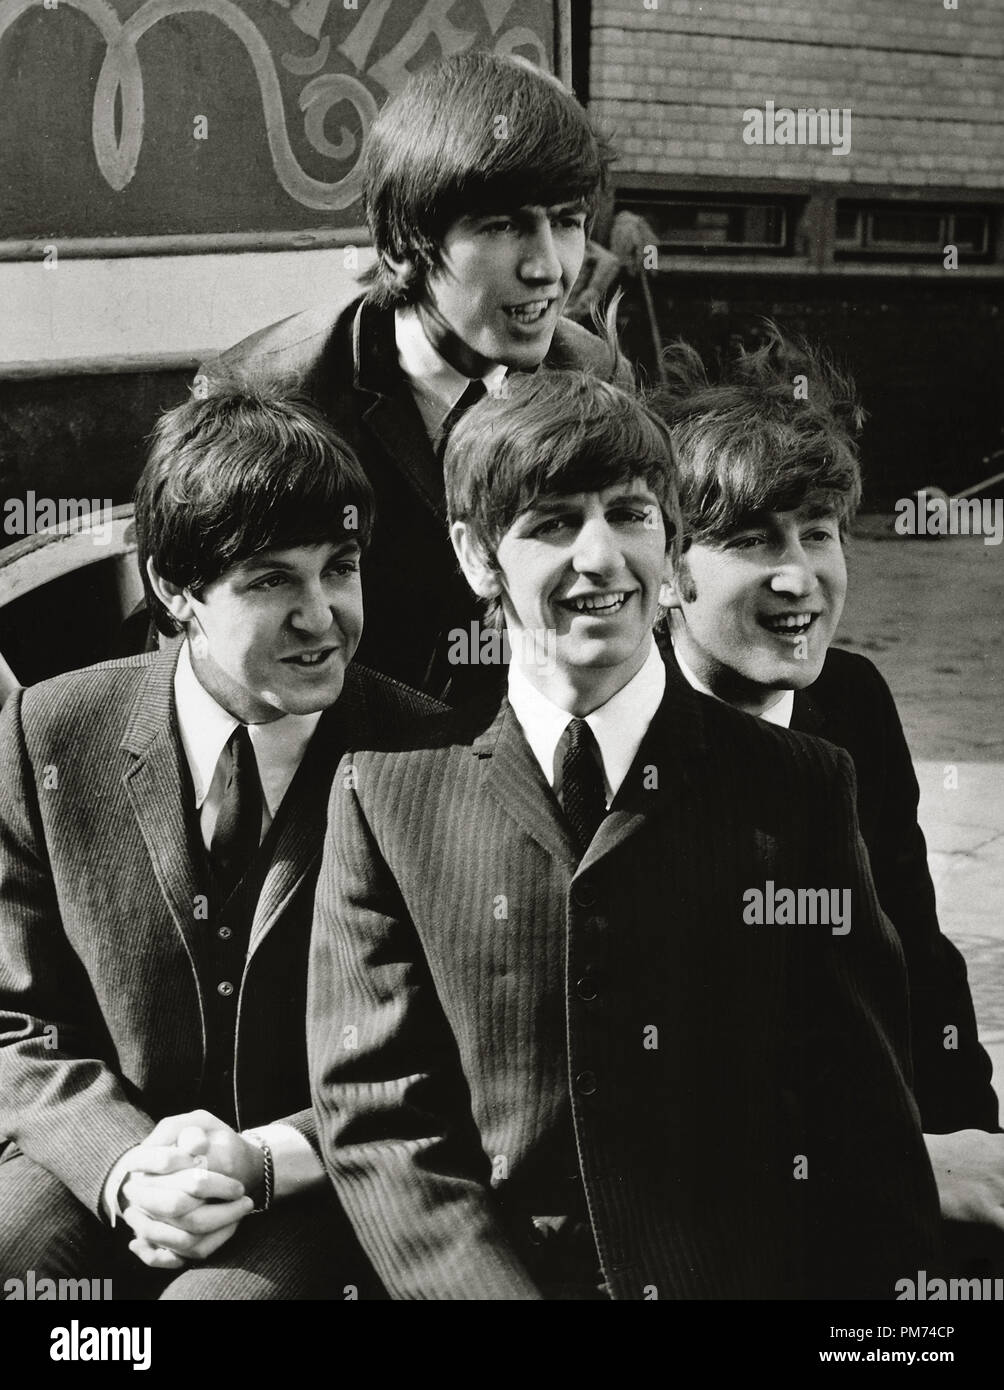 The Beatles, Paul McCartney, George Harrison, John Lennon and Ringo Starr, 'A Hard Day's Night' 1964 File Reference # 30928_107THA - Stock Image